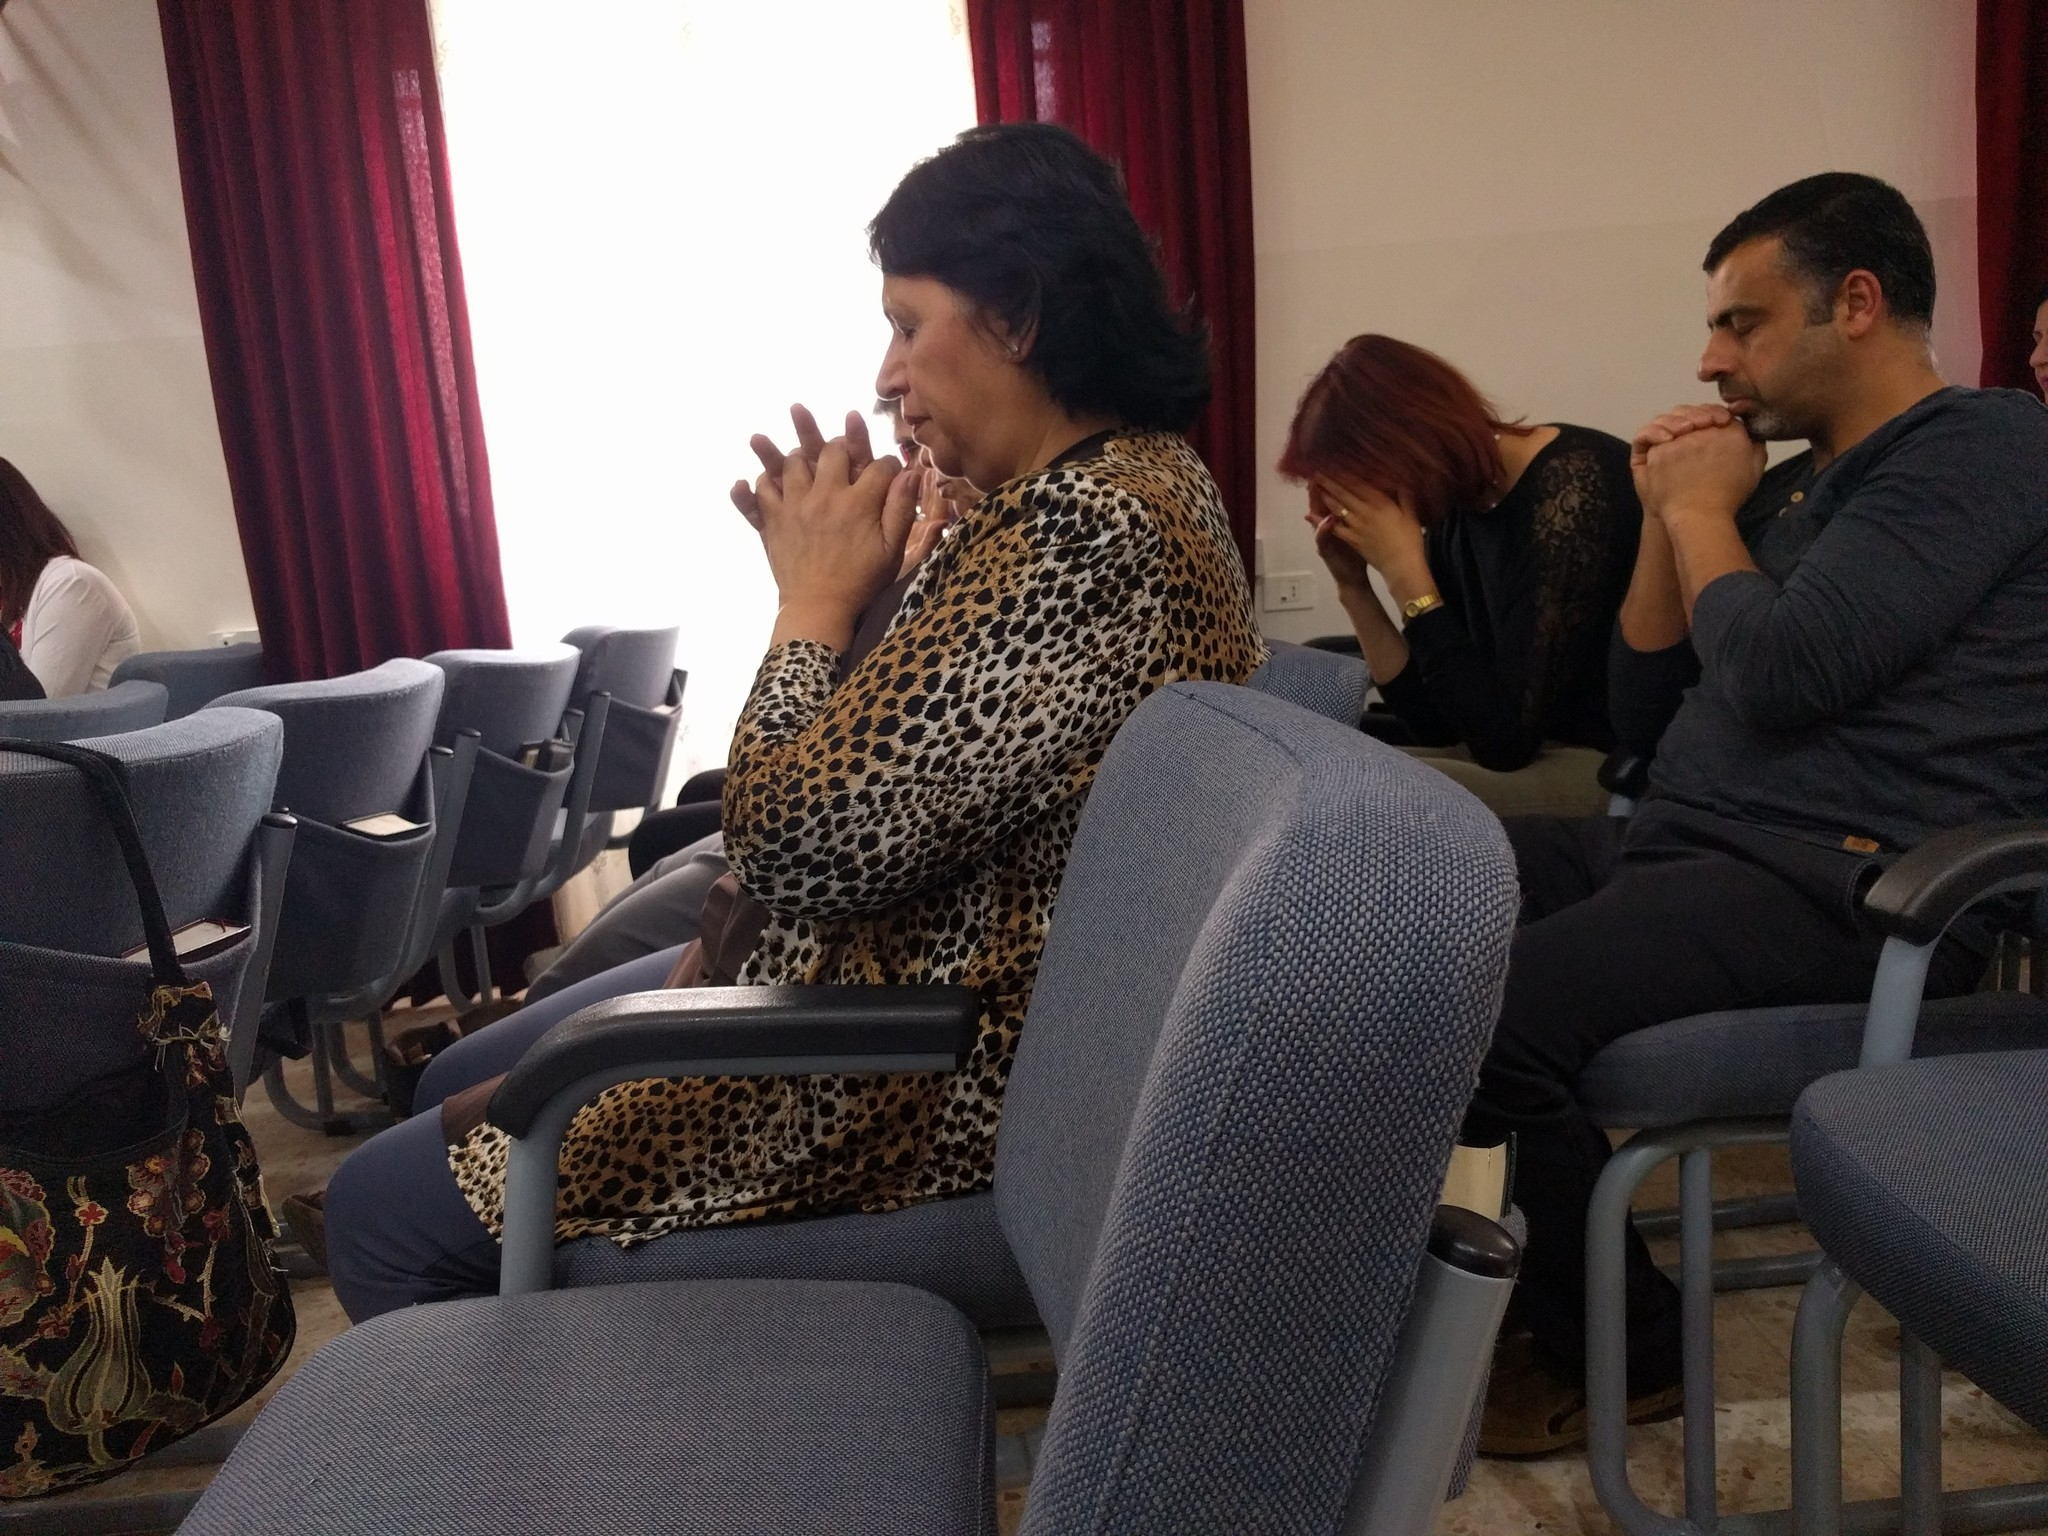 Christian worshippers gather at Immanuel Evangelical Church in Beit Sahour, West Bank.